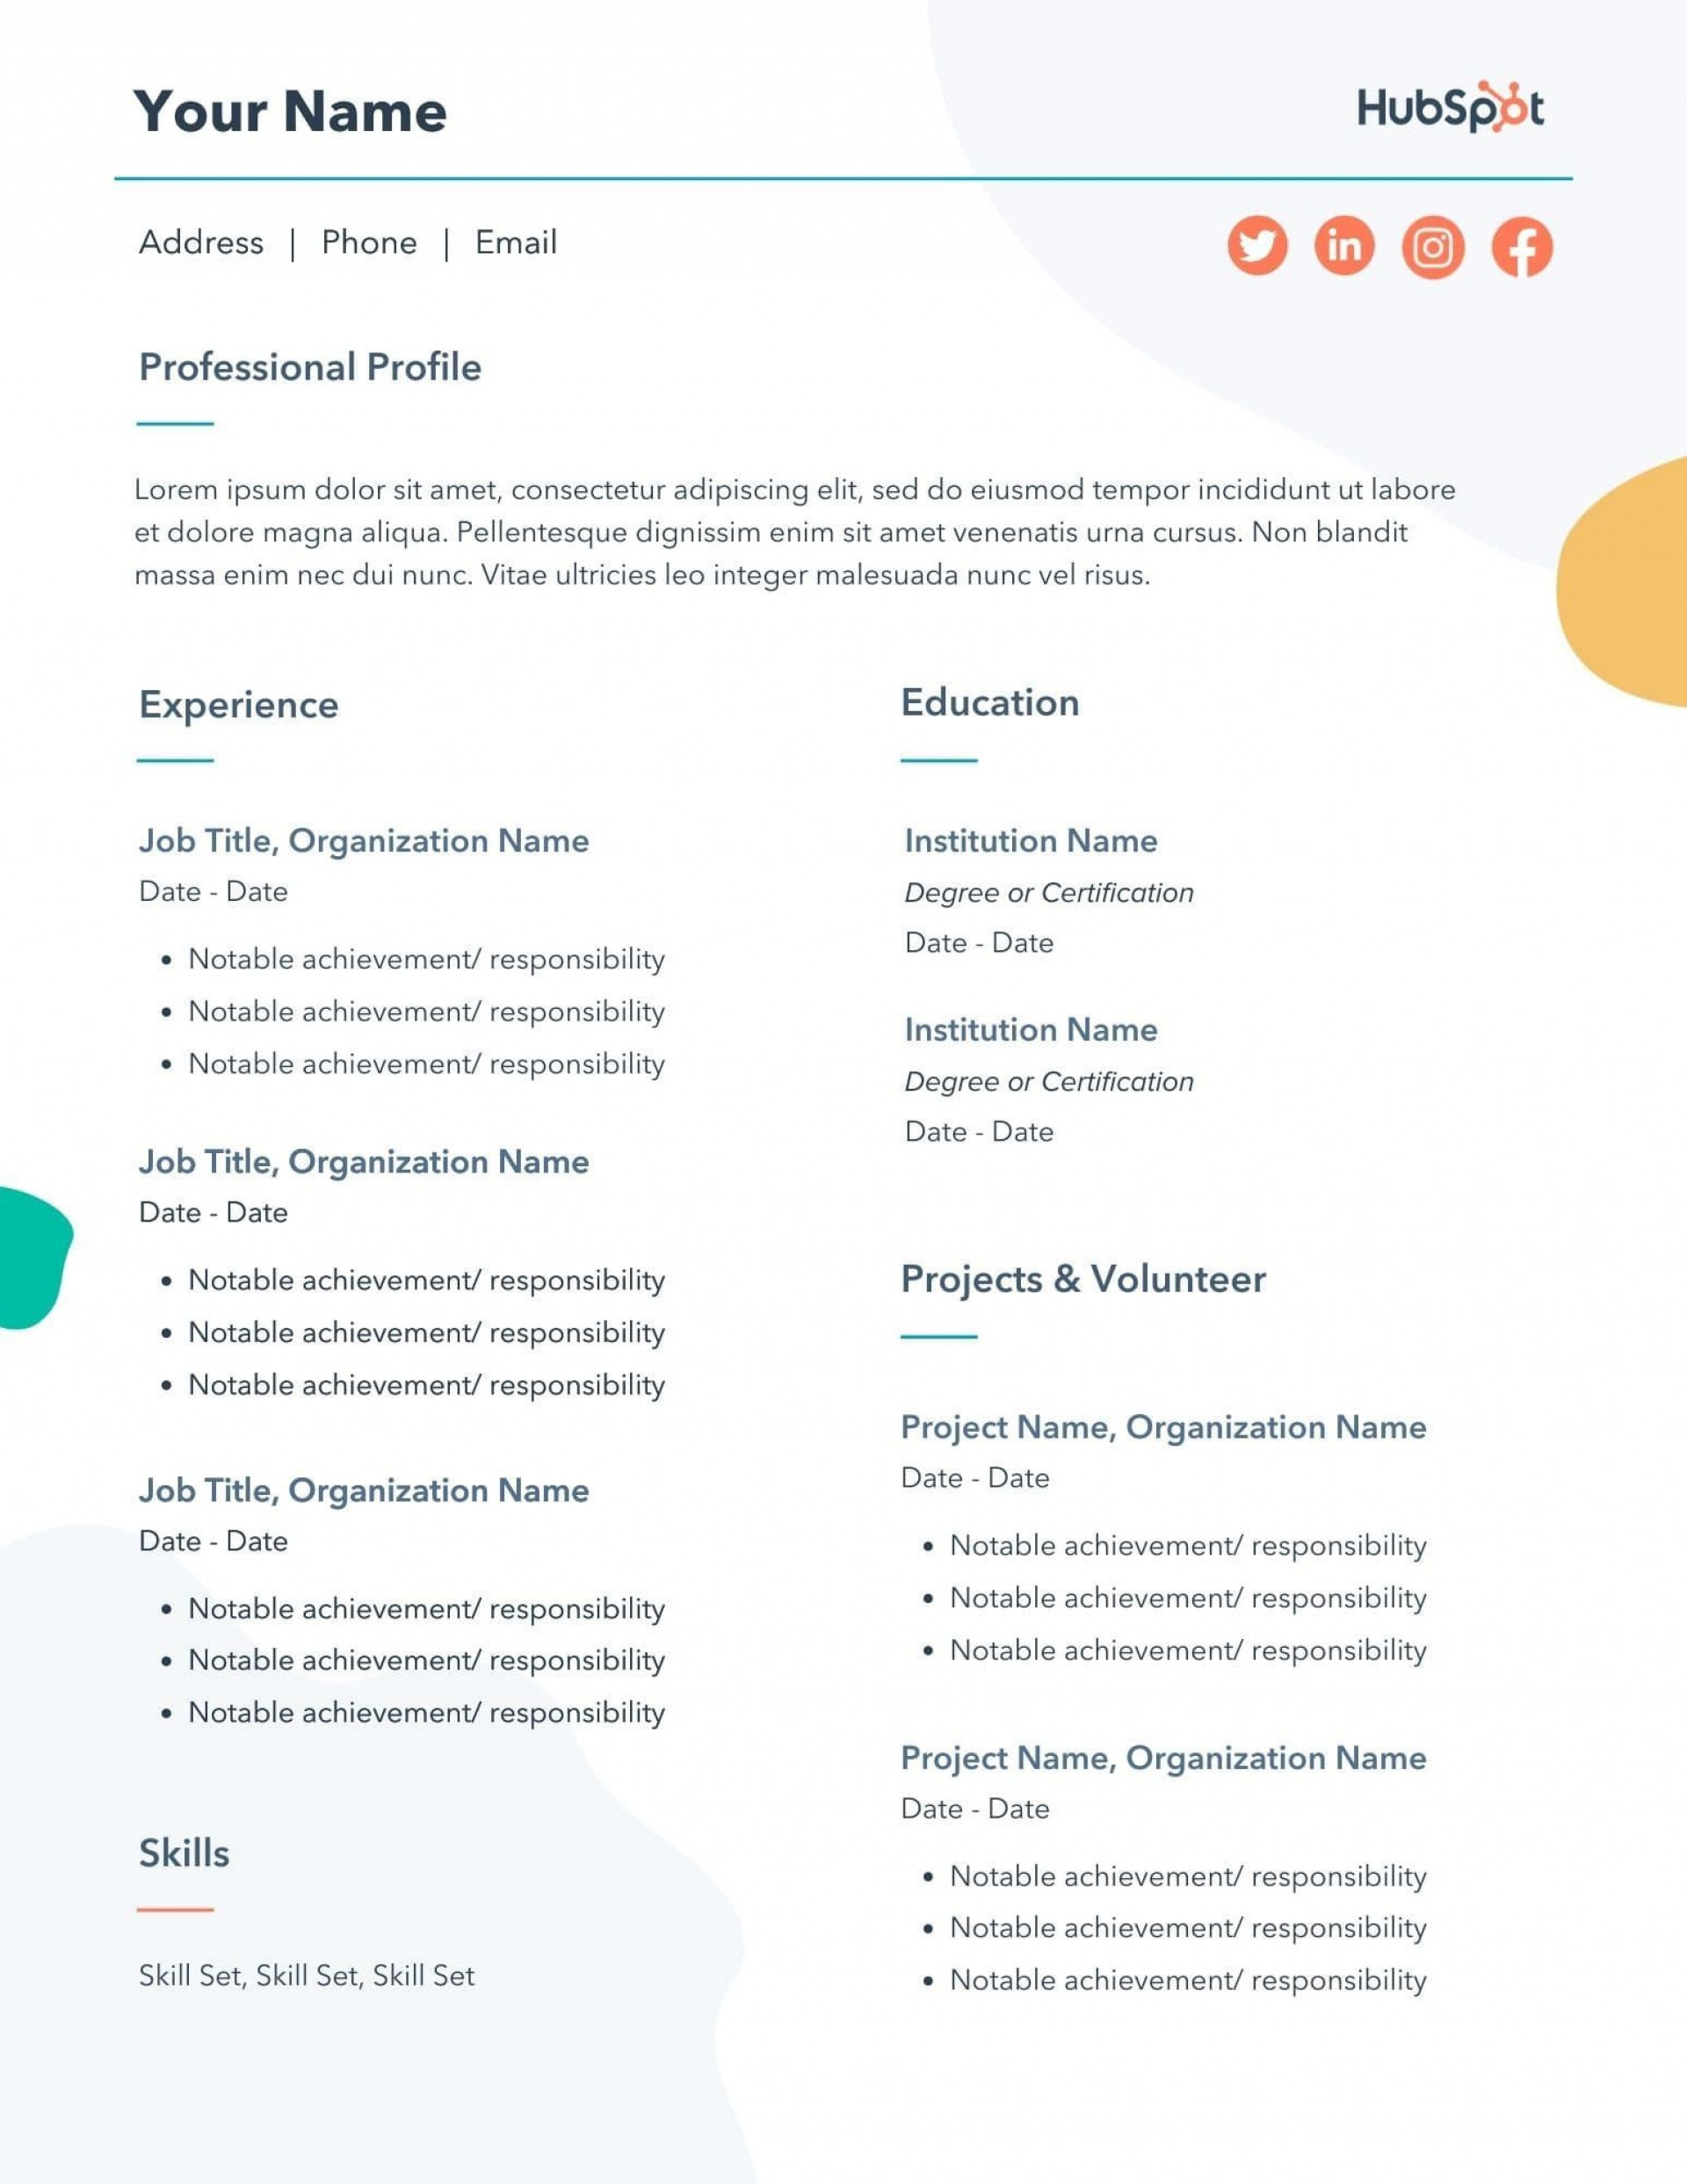 008 Wonderful Resume Template Word 2007 Free Image  Microsoft Office For M1920